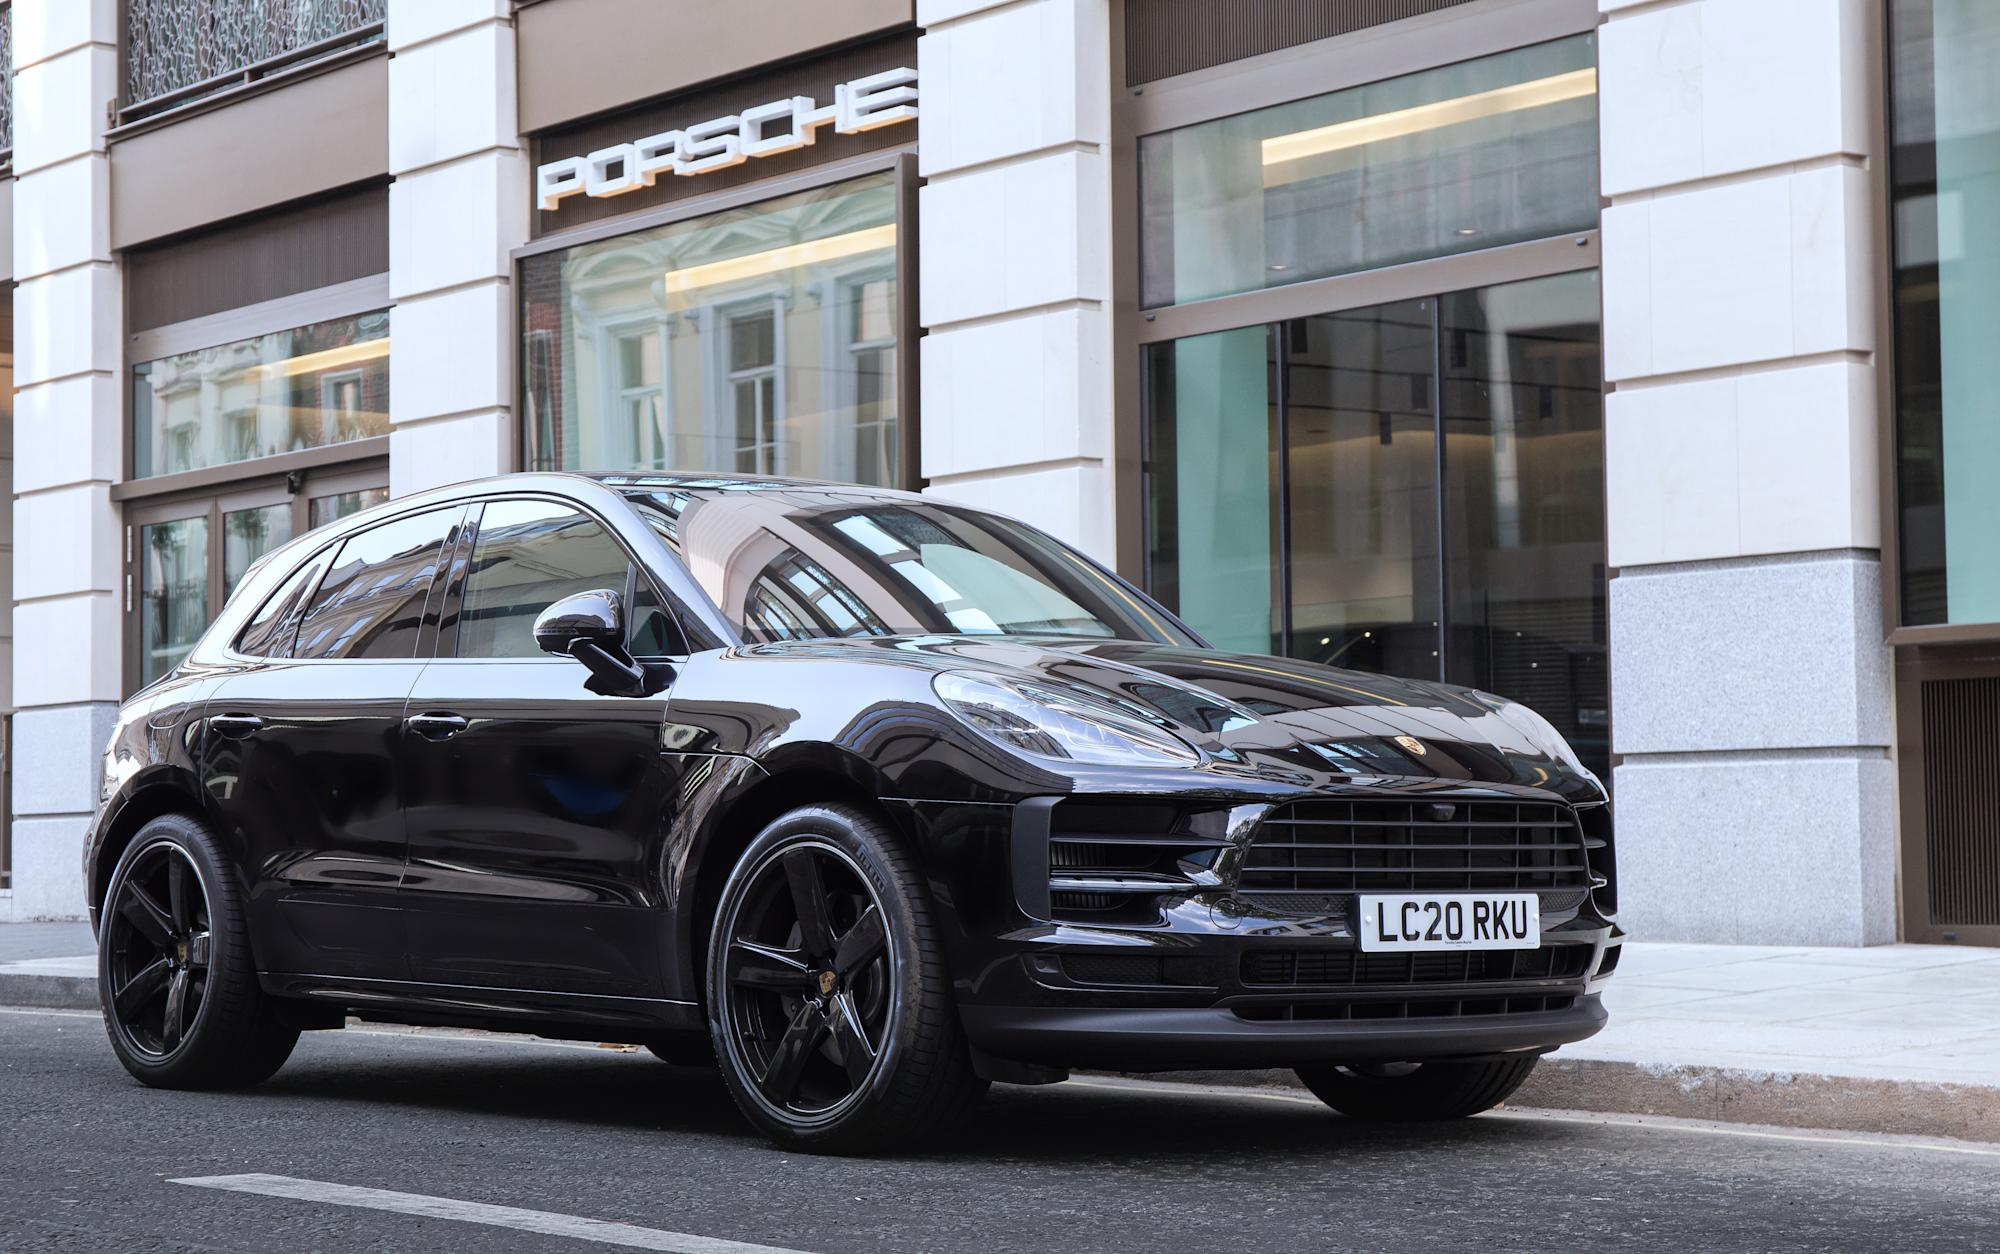 Porsche to create high-performance batteries with German firm in EV push